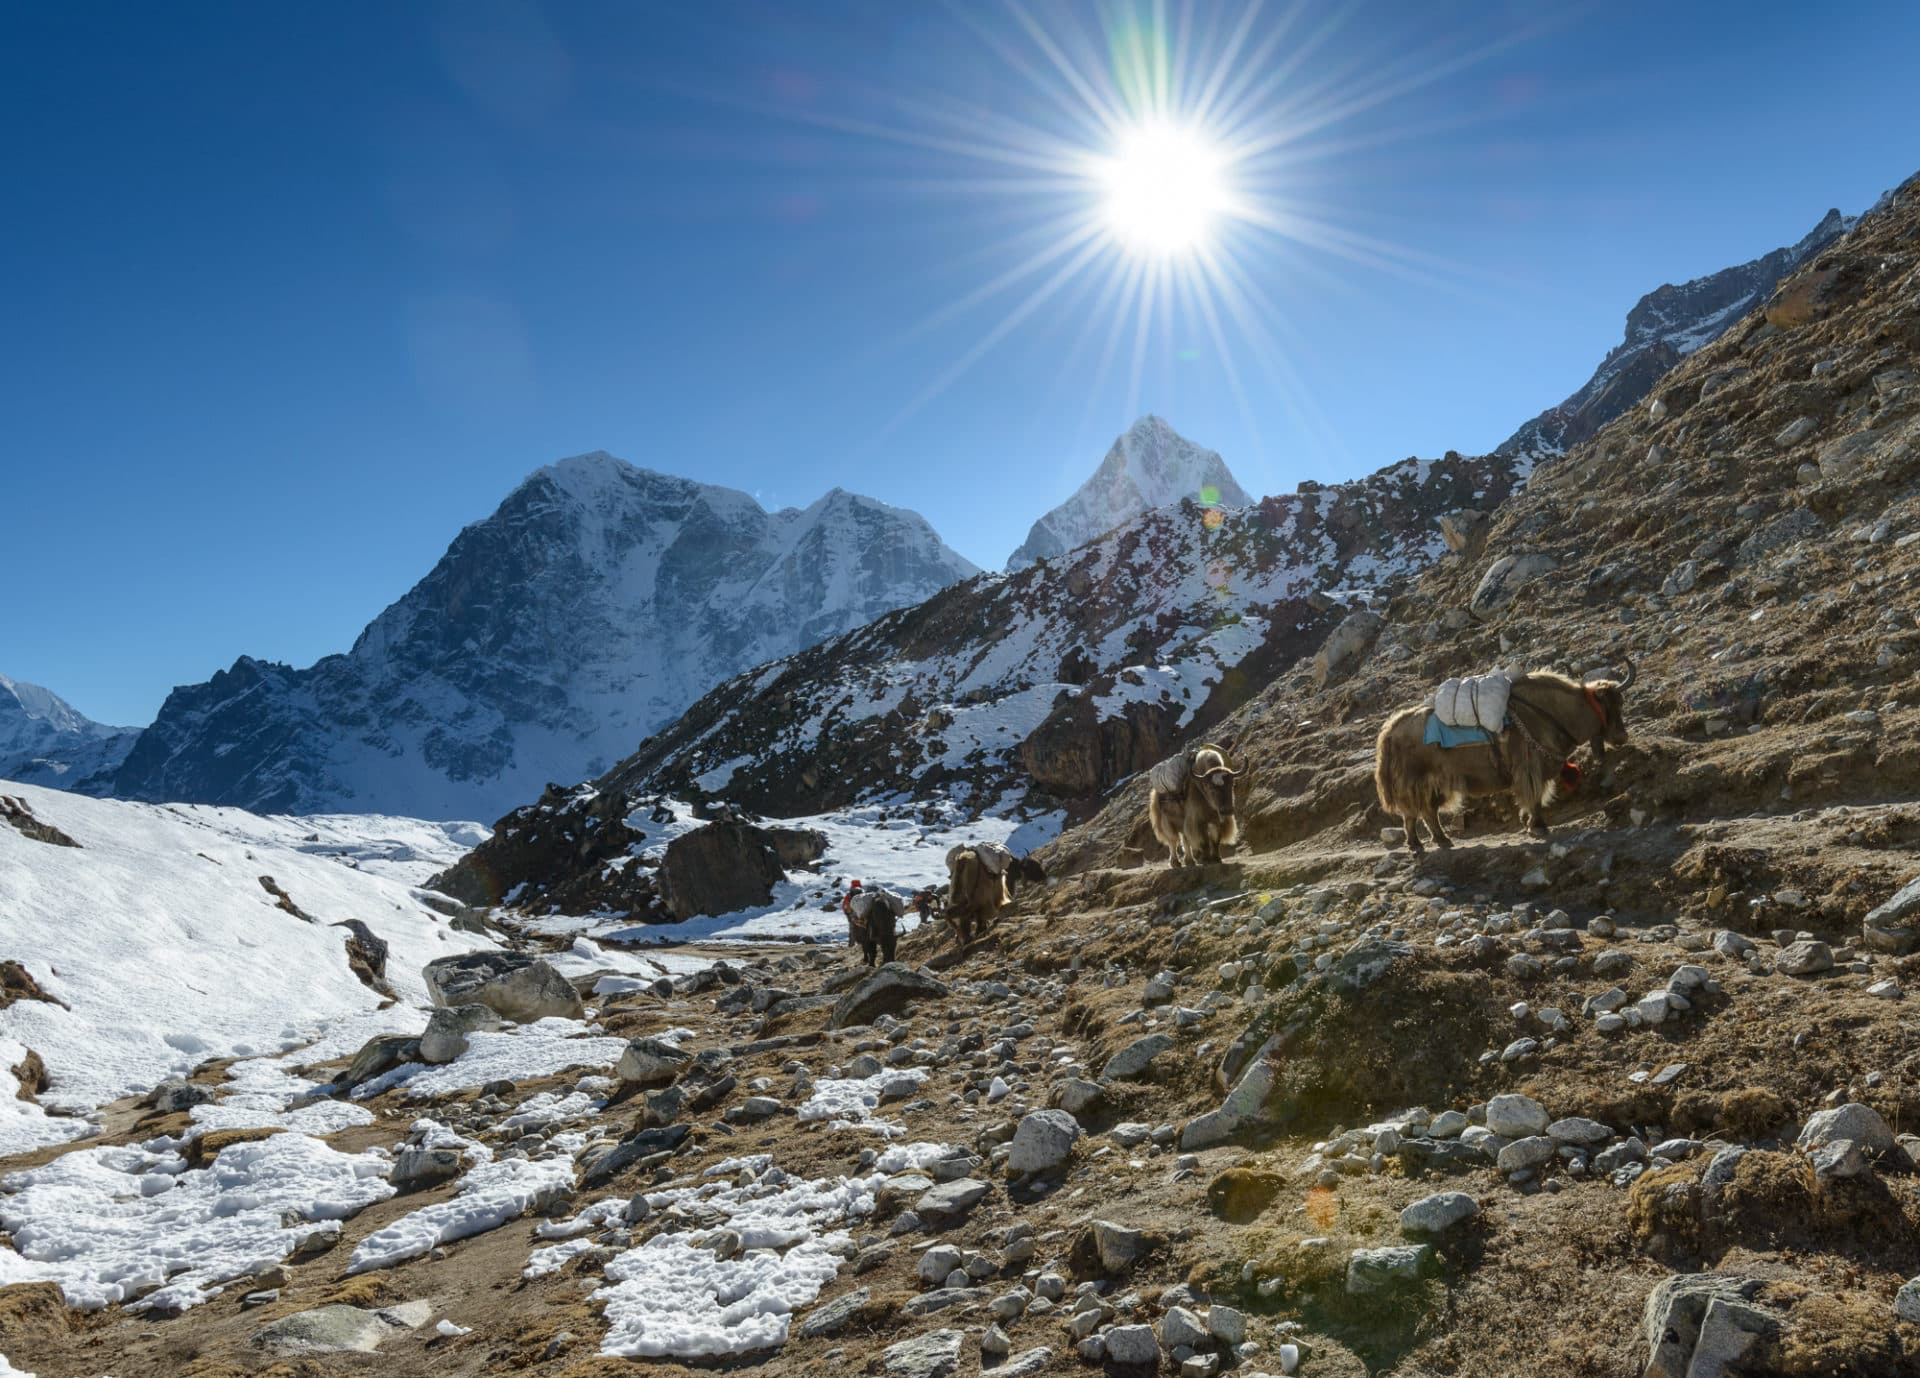 Everest Base Camp 19 Day Guided Hiking Tour